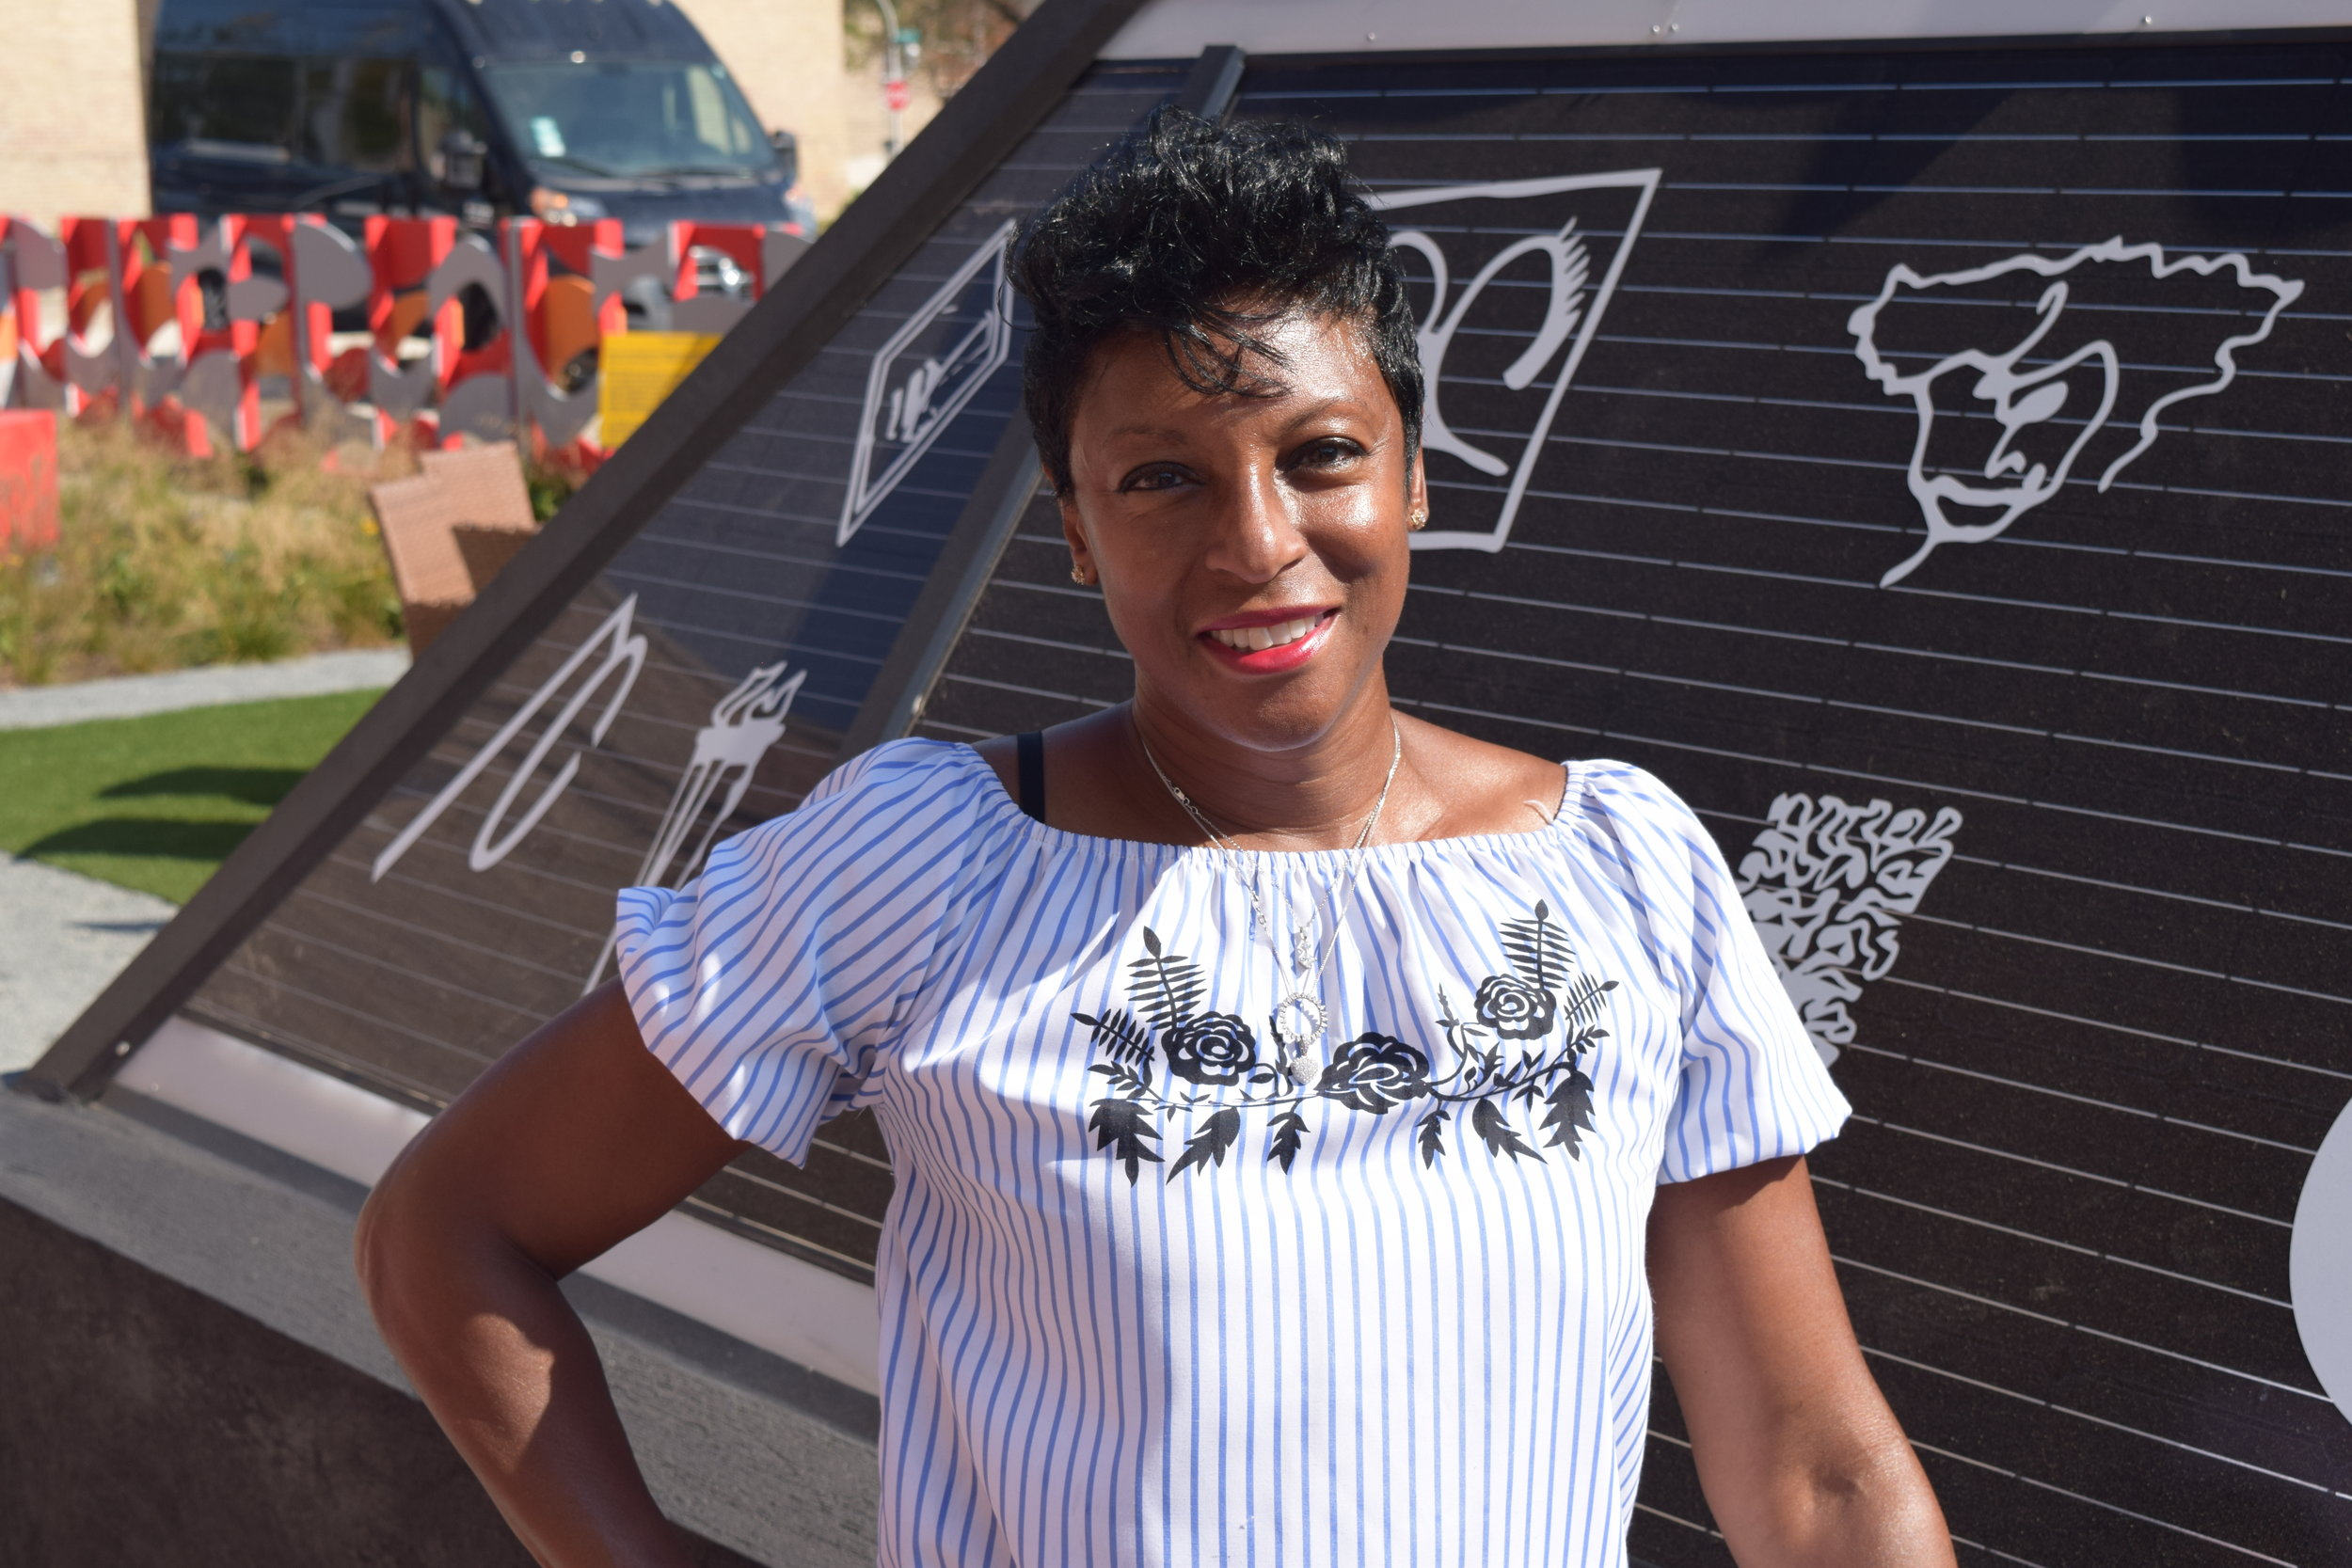 """Frances Guichard     Co-owner, Gallery Guichard   """"We've been in business since 2005. Originally, we were located at 35th and King Dr. We moved here in 2014 to the Bronzeville Artist Lofts. Gallery Guichard is one of the commercial spaces in the bottom level. There are two floors above us that are artist live/work spaces. Our mission is to expose artists to collectors – artists from all over the world - artists of all nationalities, but we specialize in the art of the African Diaspora. It gives artists an opportunity to be creative and imaginative in bringing their works out and us to be able to help them reach an audience that they would not ordinarily reach. We're doing great things in the community, and we're very proud to be here…Because our ancestors came from the South fleeing Jim Crow and other atrocities, they came here for a better way of life, they were able to turn lemons into lemonade. You had a myriad of people who came and really made a better life for themselves. You had your upper, middle, and lower income all living and working together, supporting each other because they couldn't go anywhere else. Because of redlining. African-Americans made this a place where the dollar changed hands on a regular basis and kept the money within the community."""""""